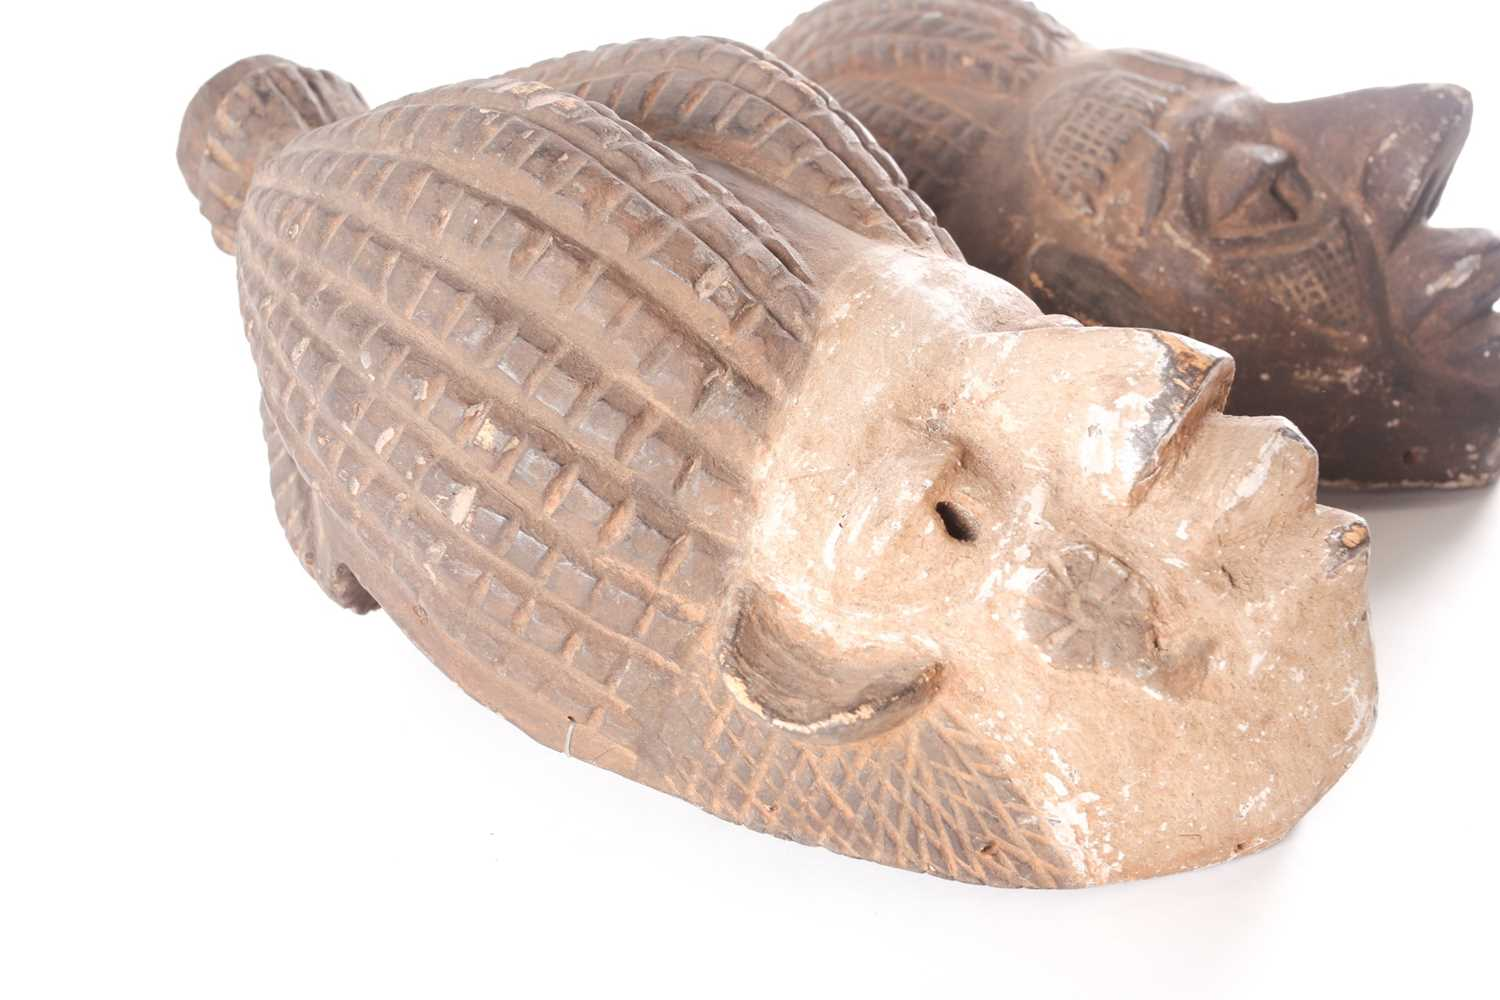 An Ibibio mask, Nigeria, with tall coiffure united at the top, the kaolin painted face with relief - Image 4 of 4